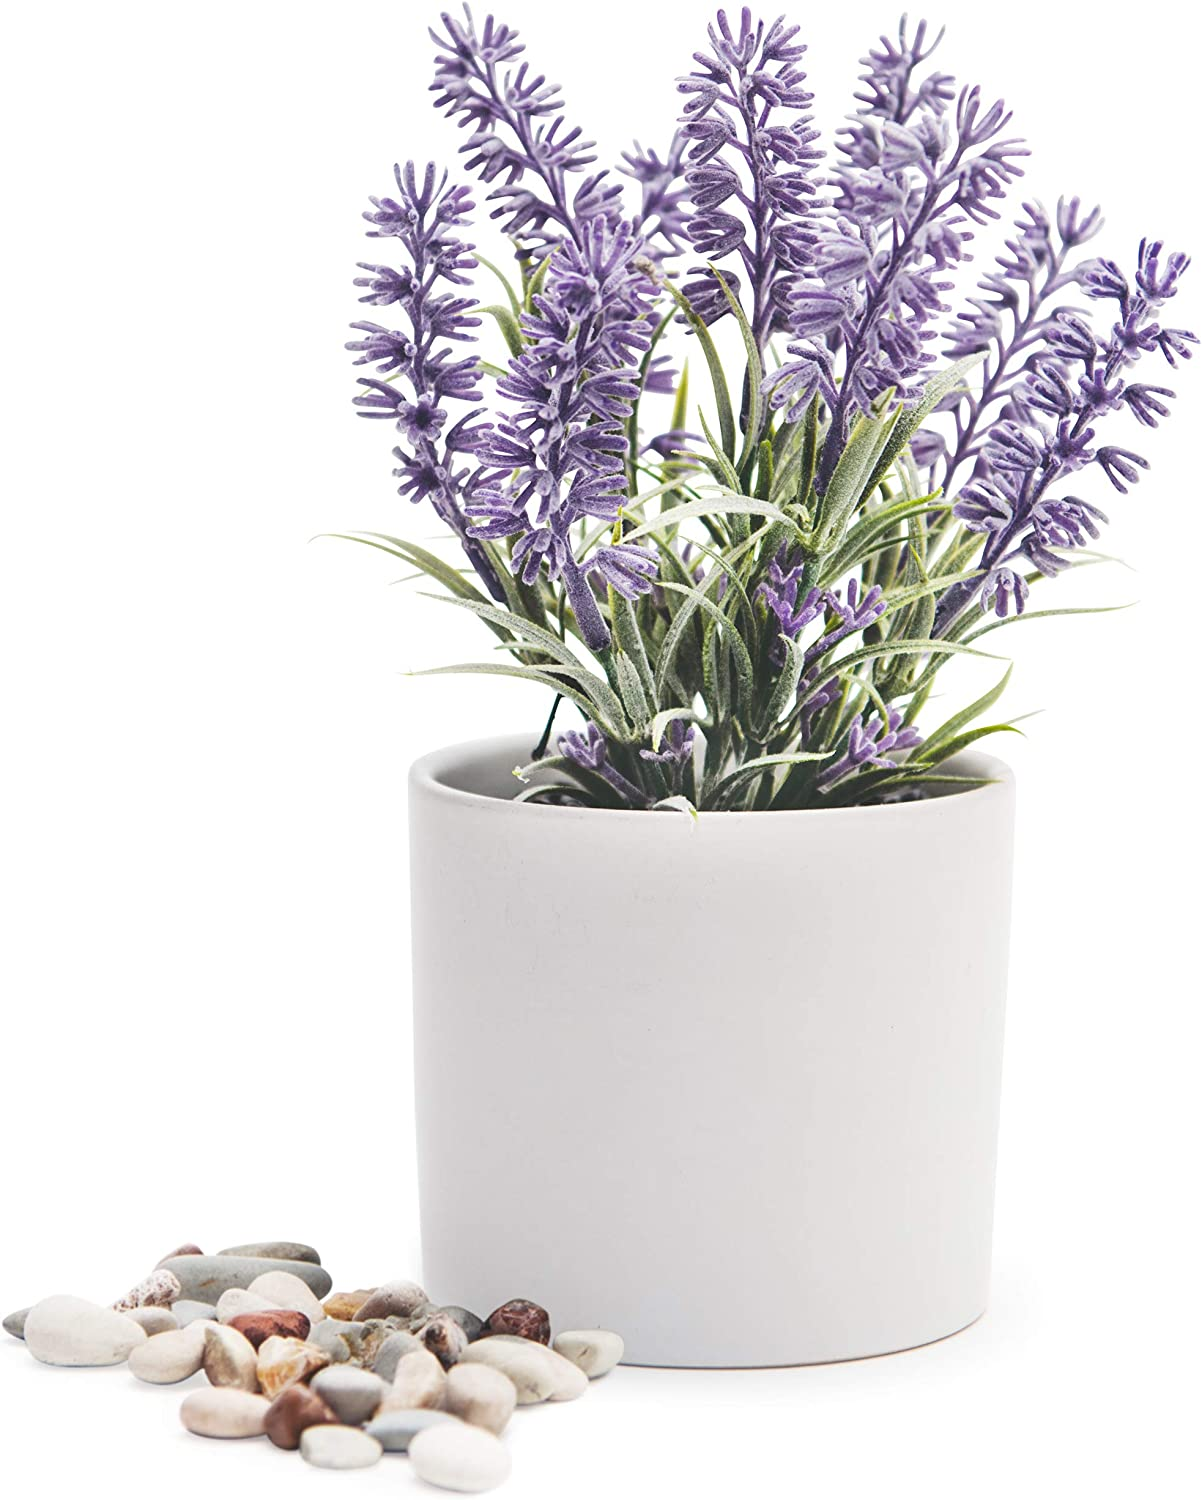 Artificial Lavender in White Pot | Realistic Faux Lavender Plant | Stunning Lavender Decor Pot for Indoor Plant Decor | Quality feaux Lavender Flowers